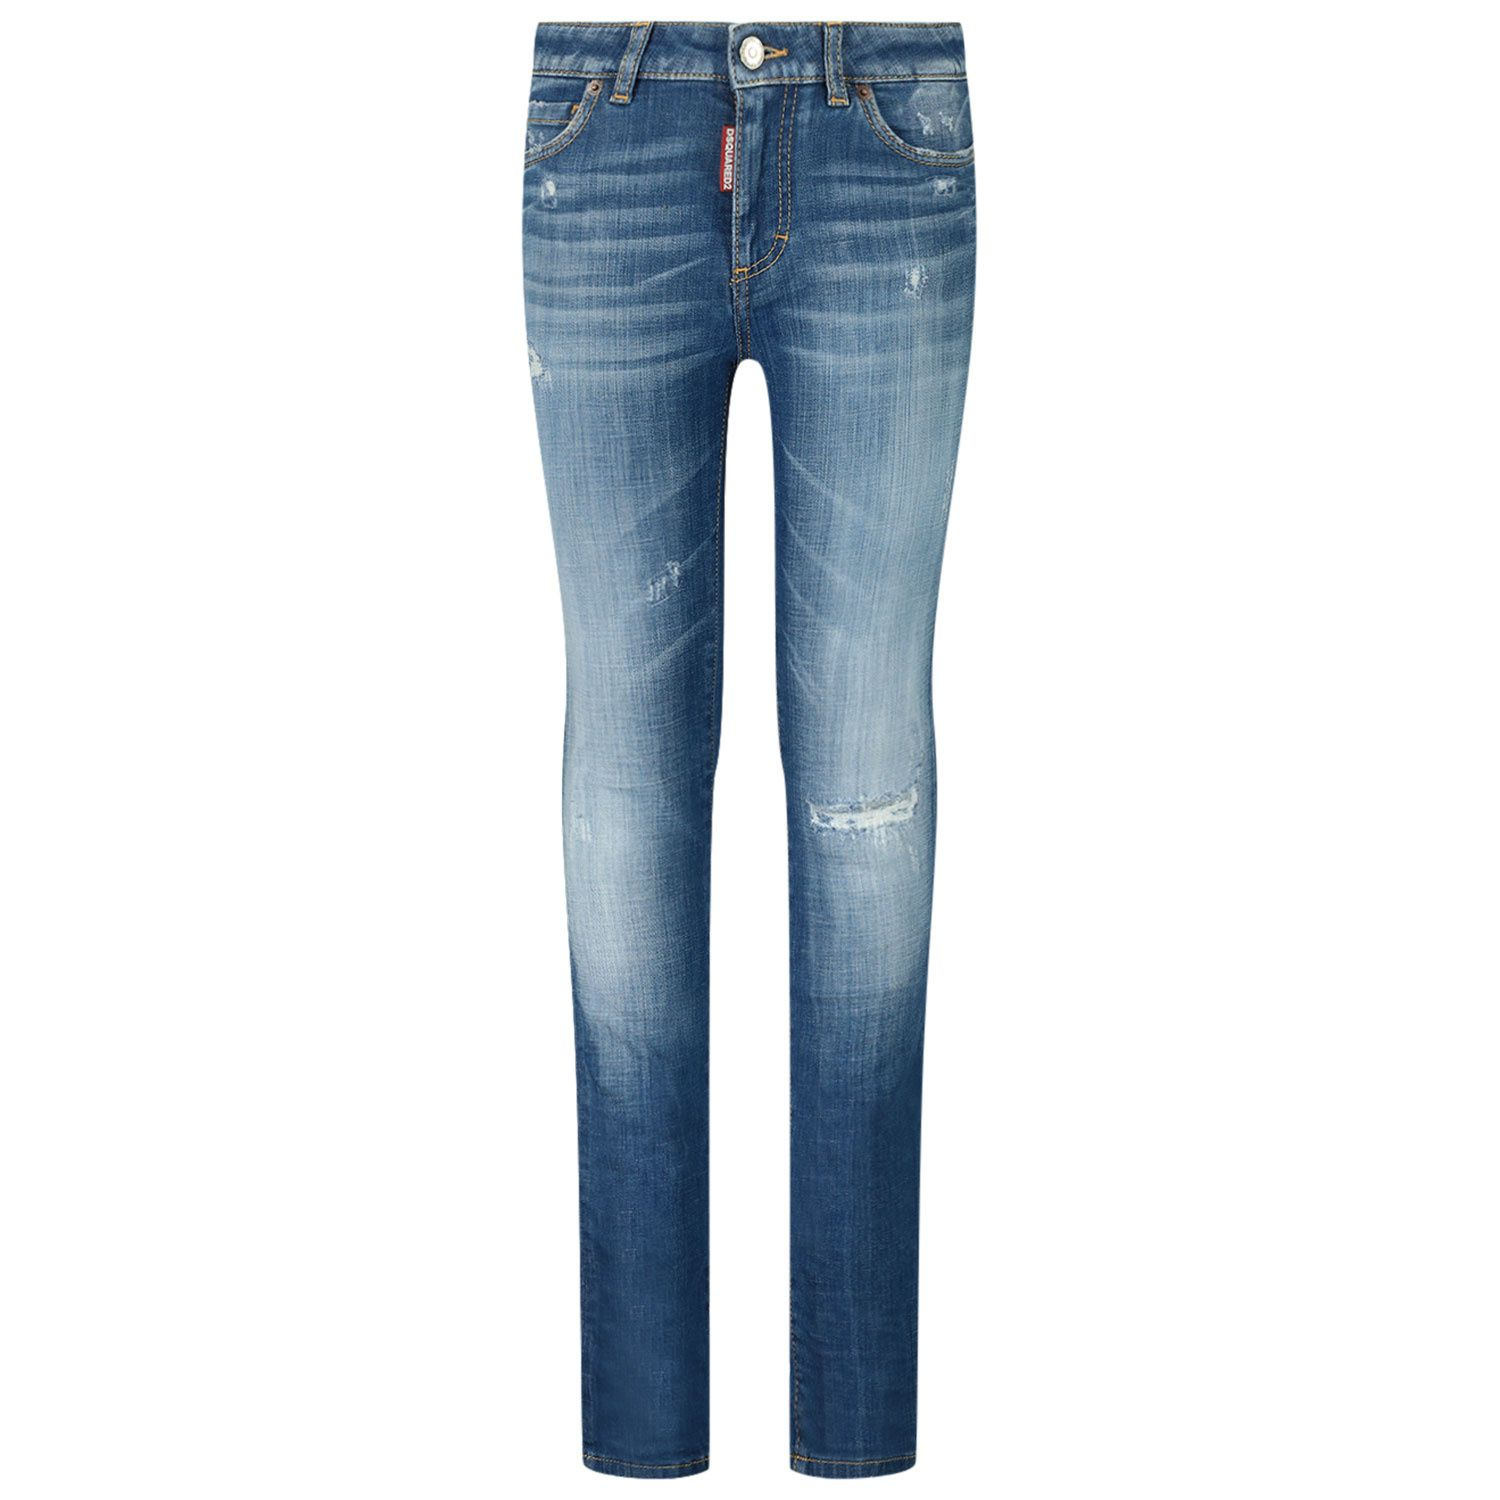 Picture of Dsquared2 DQ01DX D005H kids jeans jeans